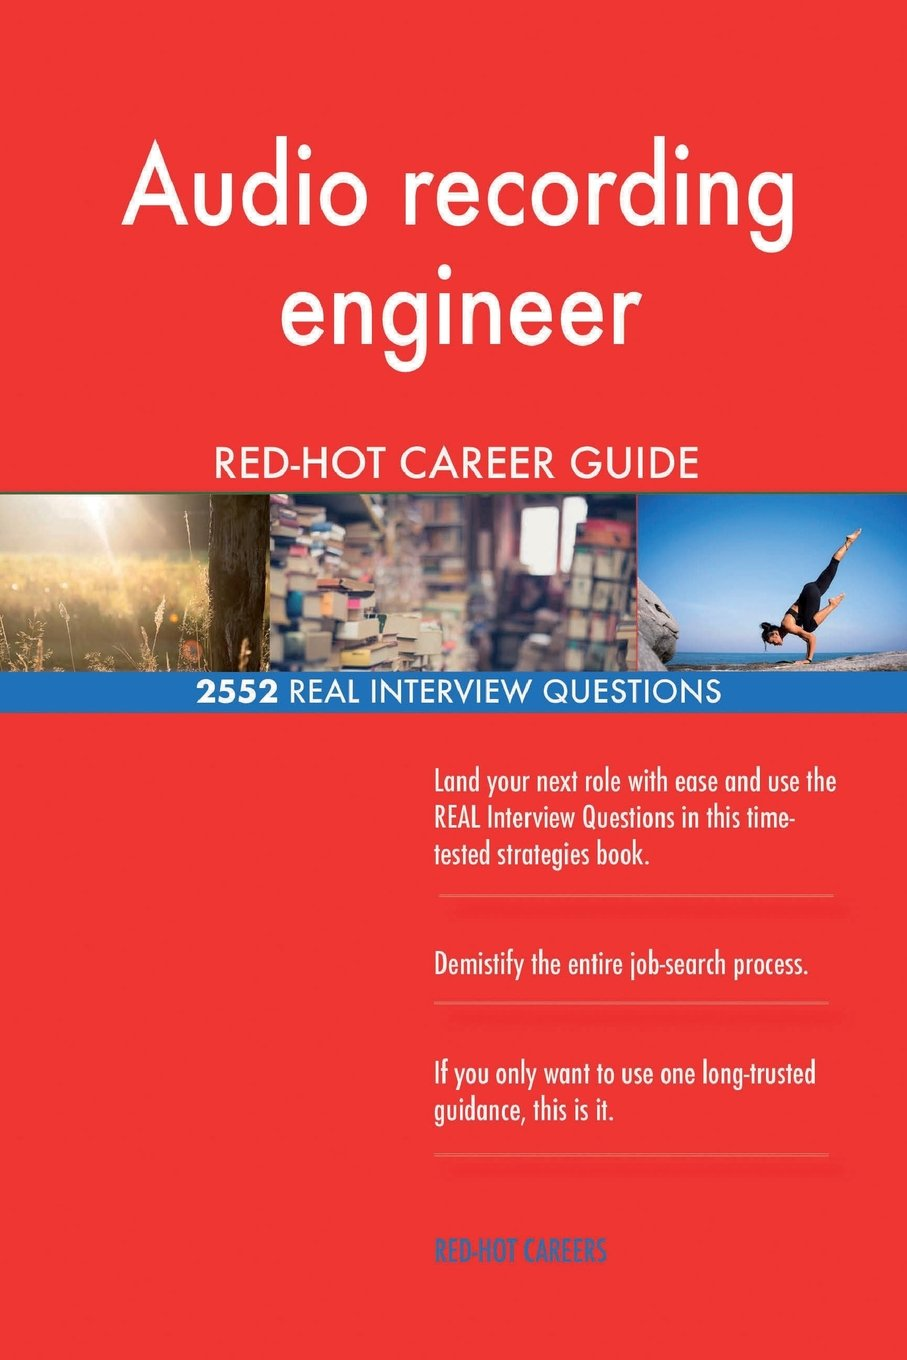 Audio recording engineer RED-HOT Career Guide; 2552 REAL Interview Questions